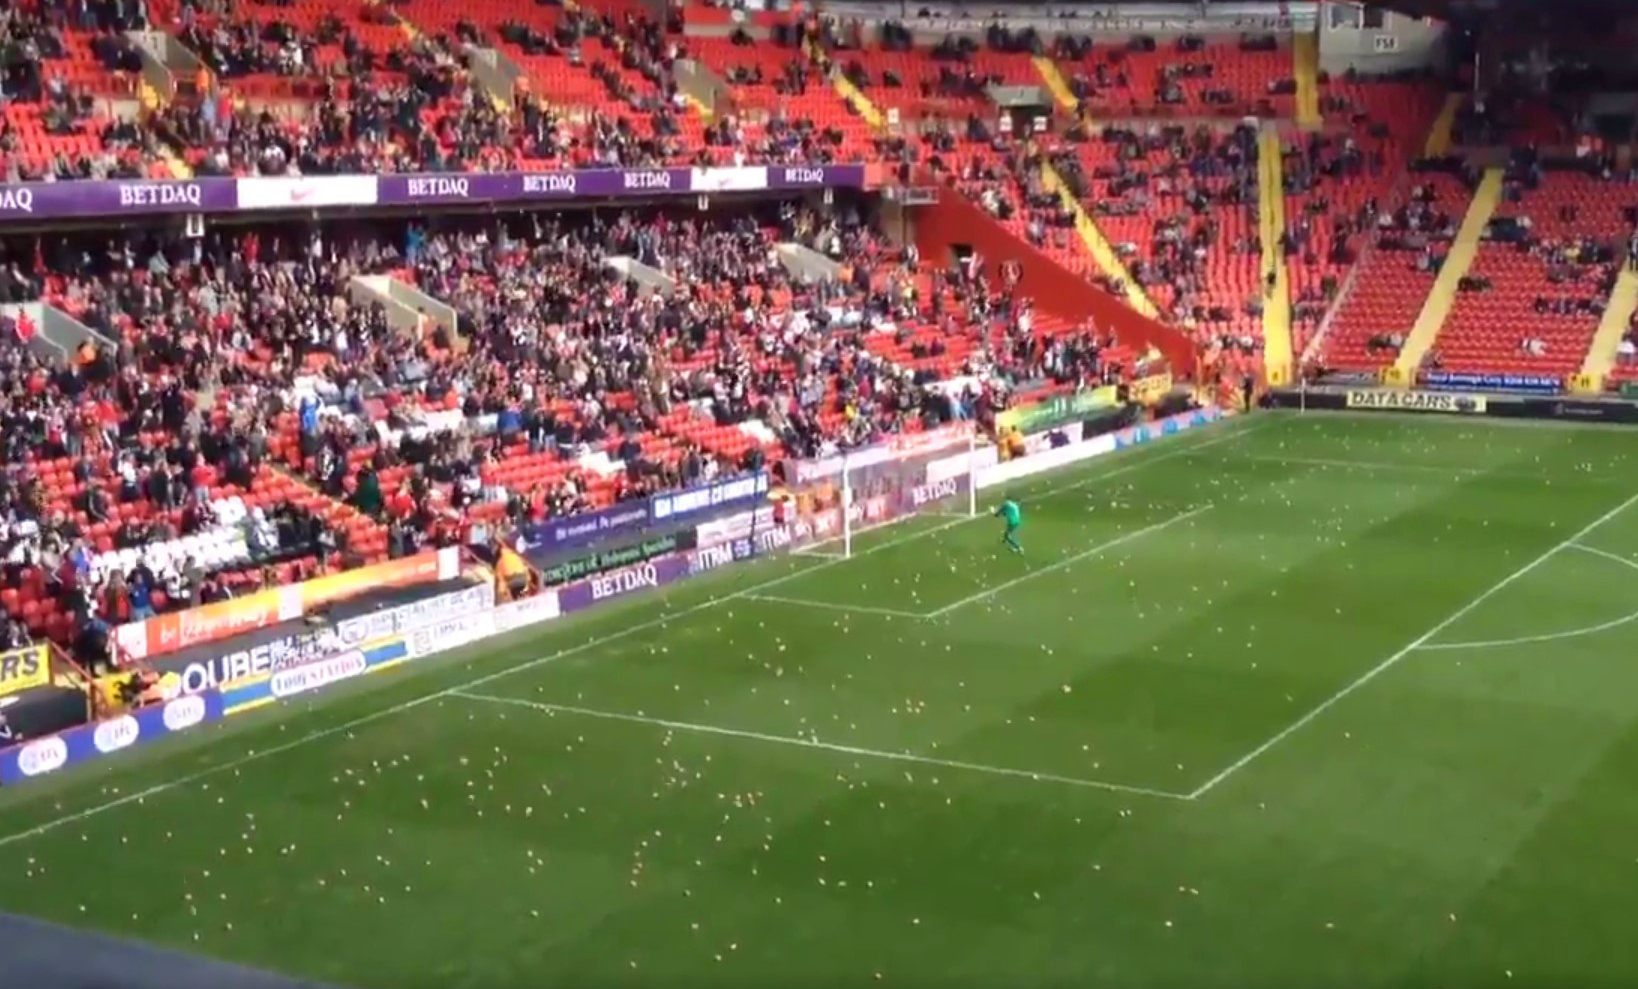 Charlton Athletic v Coventry City stopped due to pigs being on the pitch